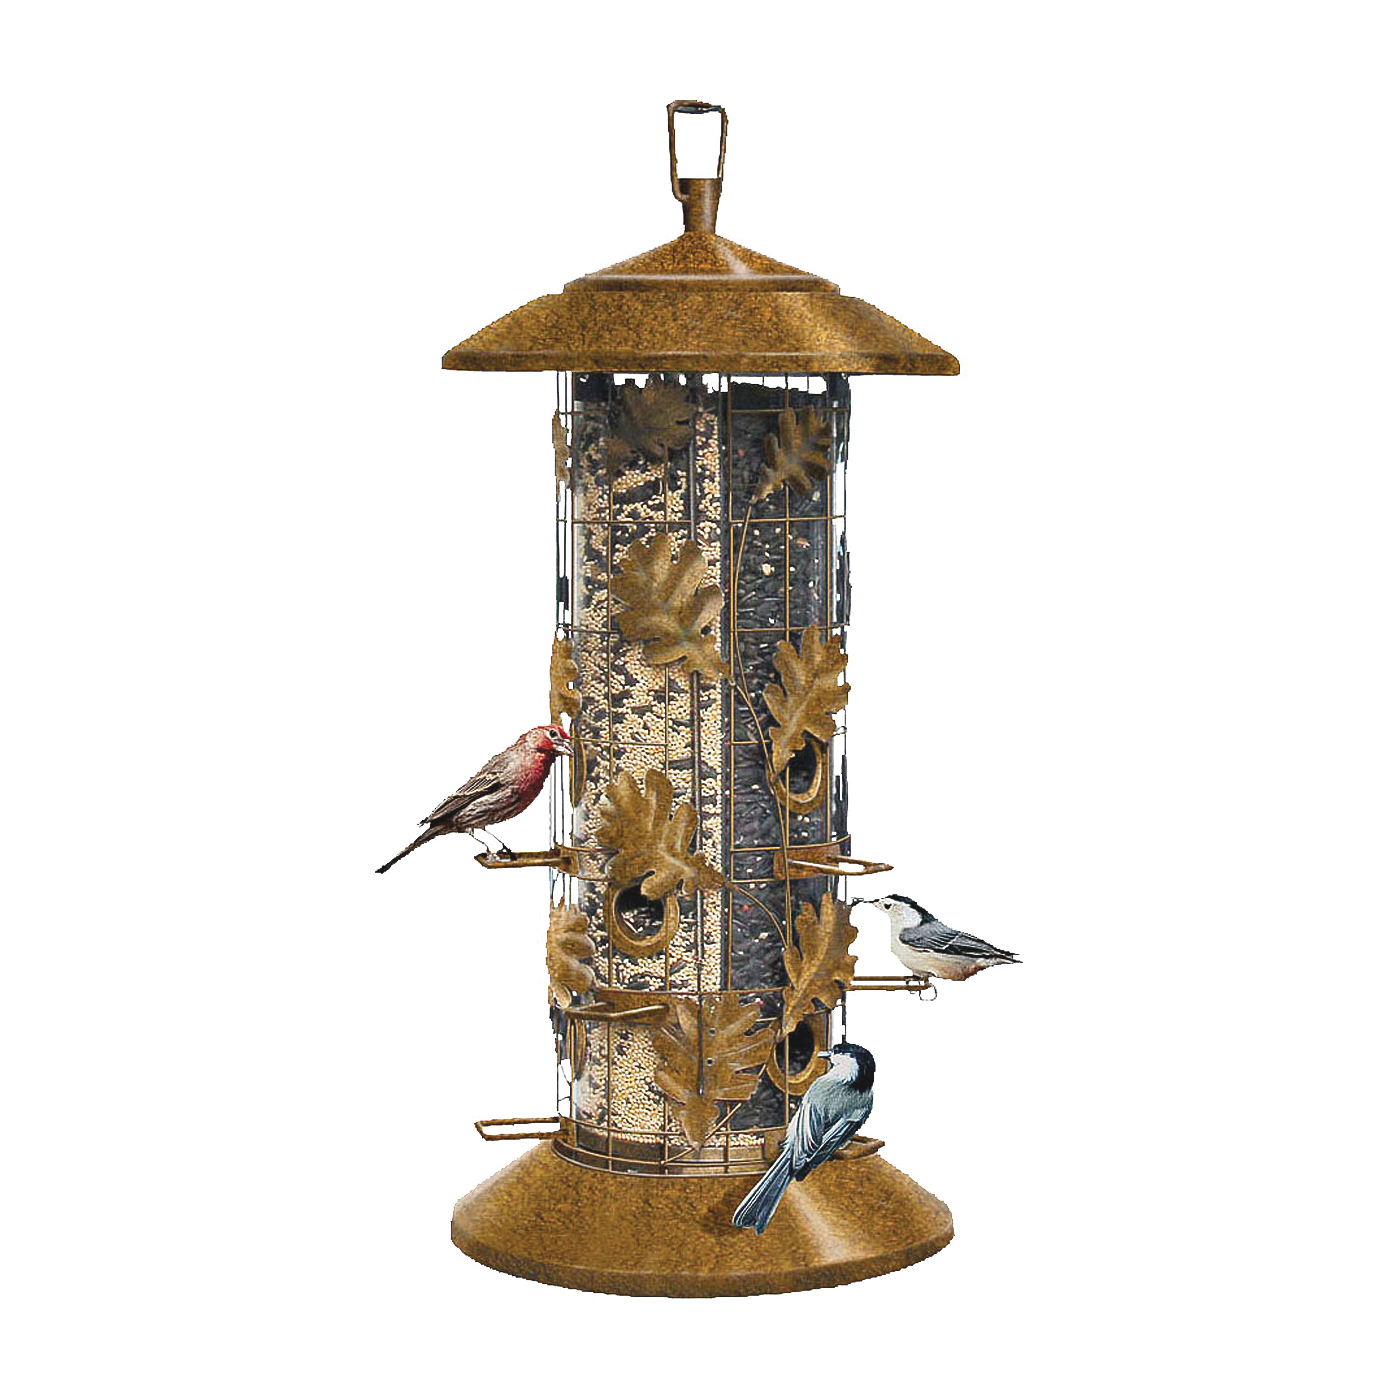 Picture of Perky-Pet 337 Wild Bird Feeder, Metal, Rustic Brown, Hanging Mounting